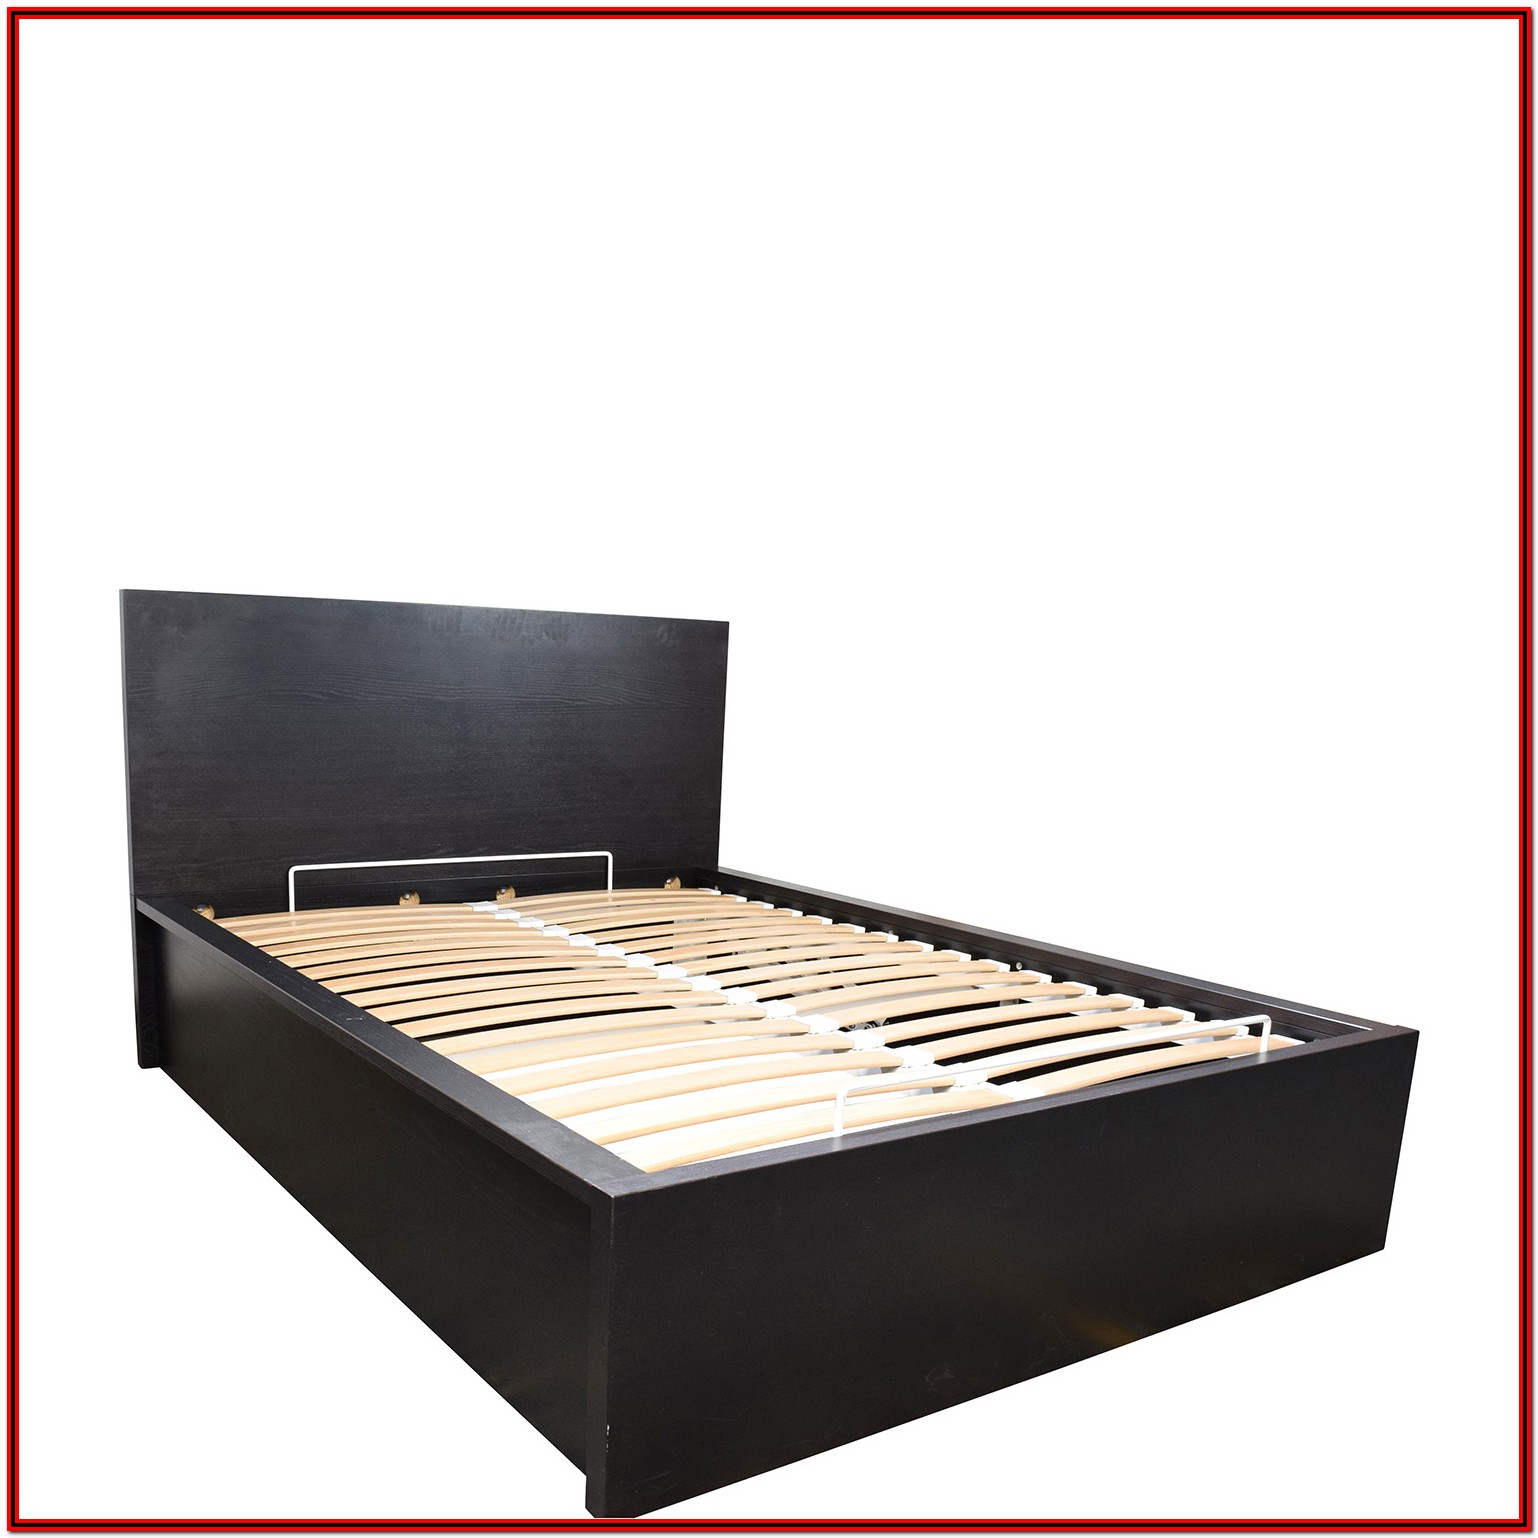 Full Bed Frame With Headboard Ikea